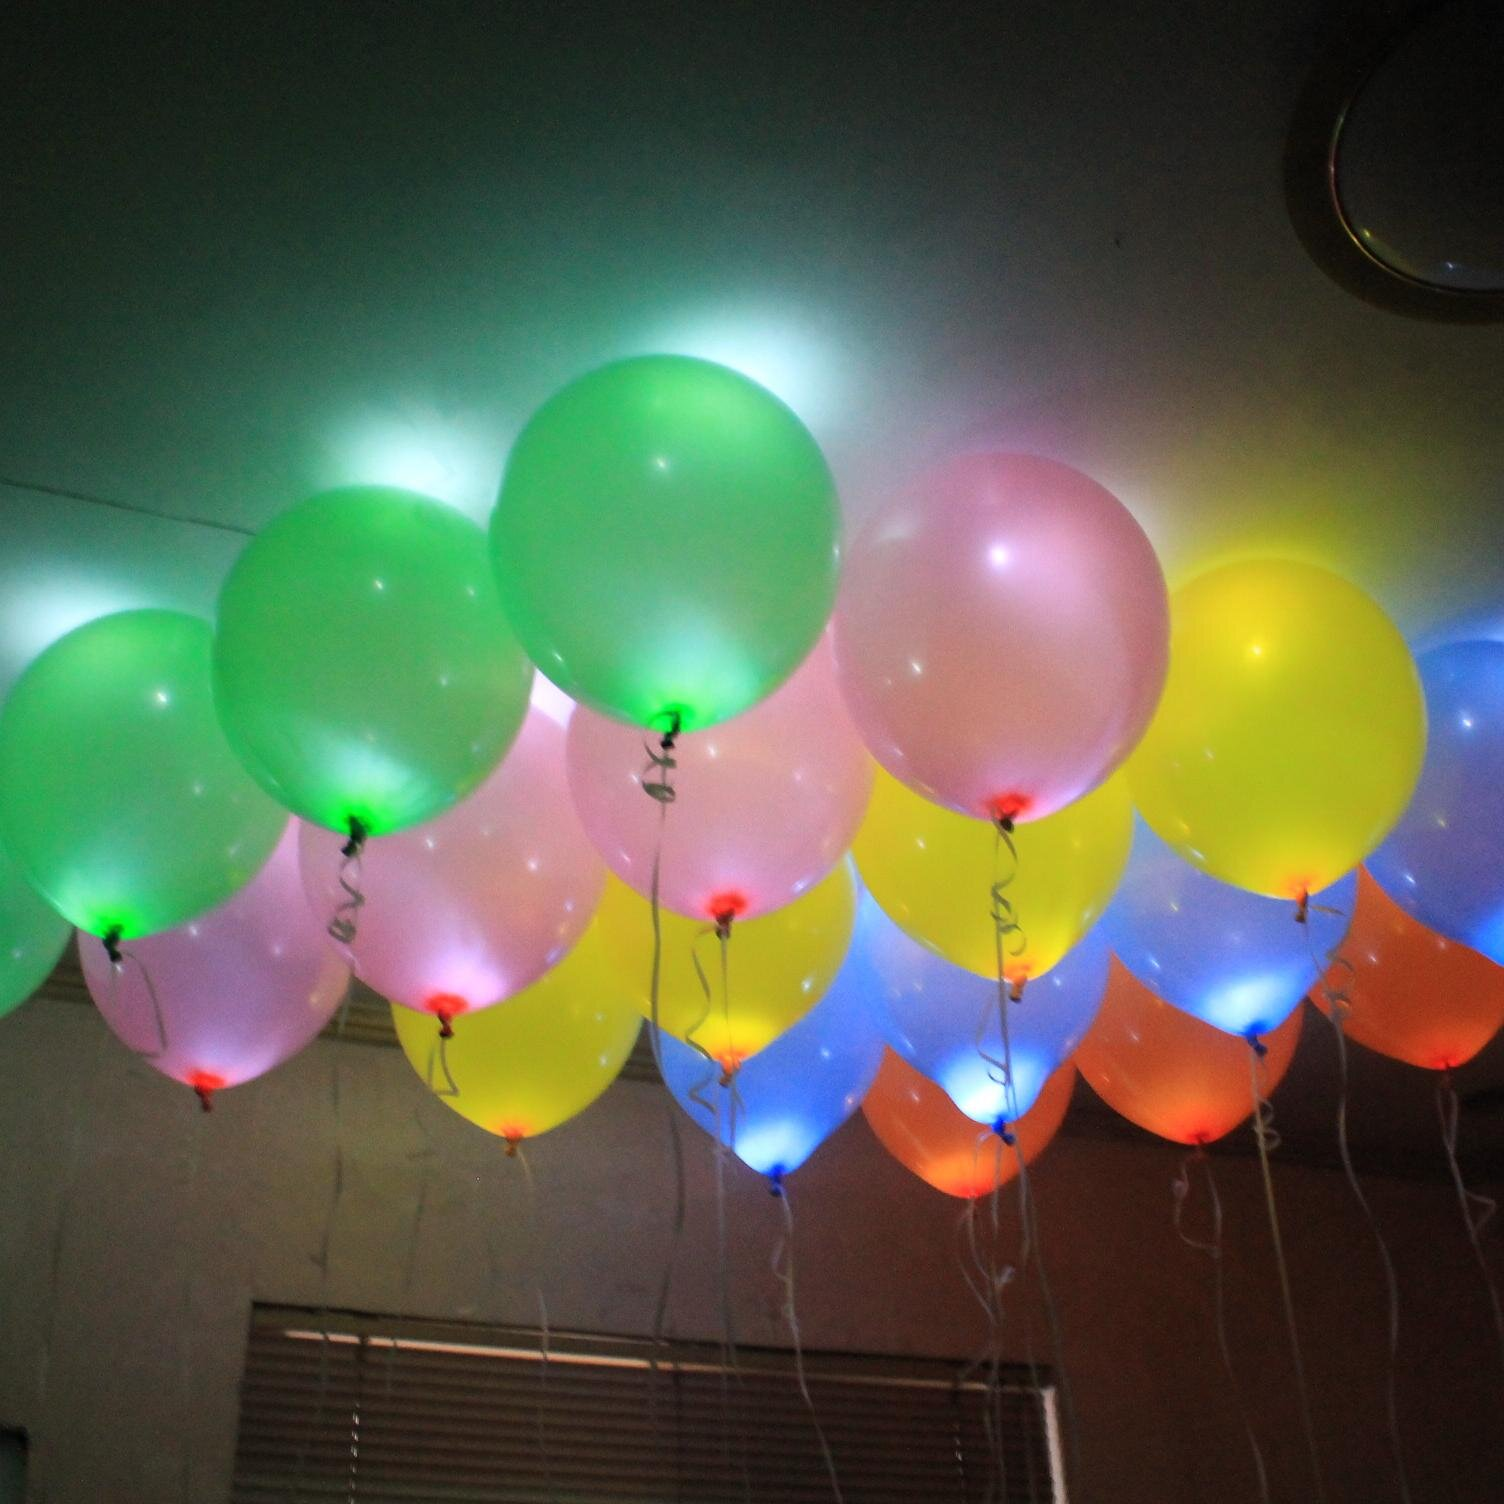 Led Ballon | Megagadgets